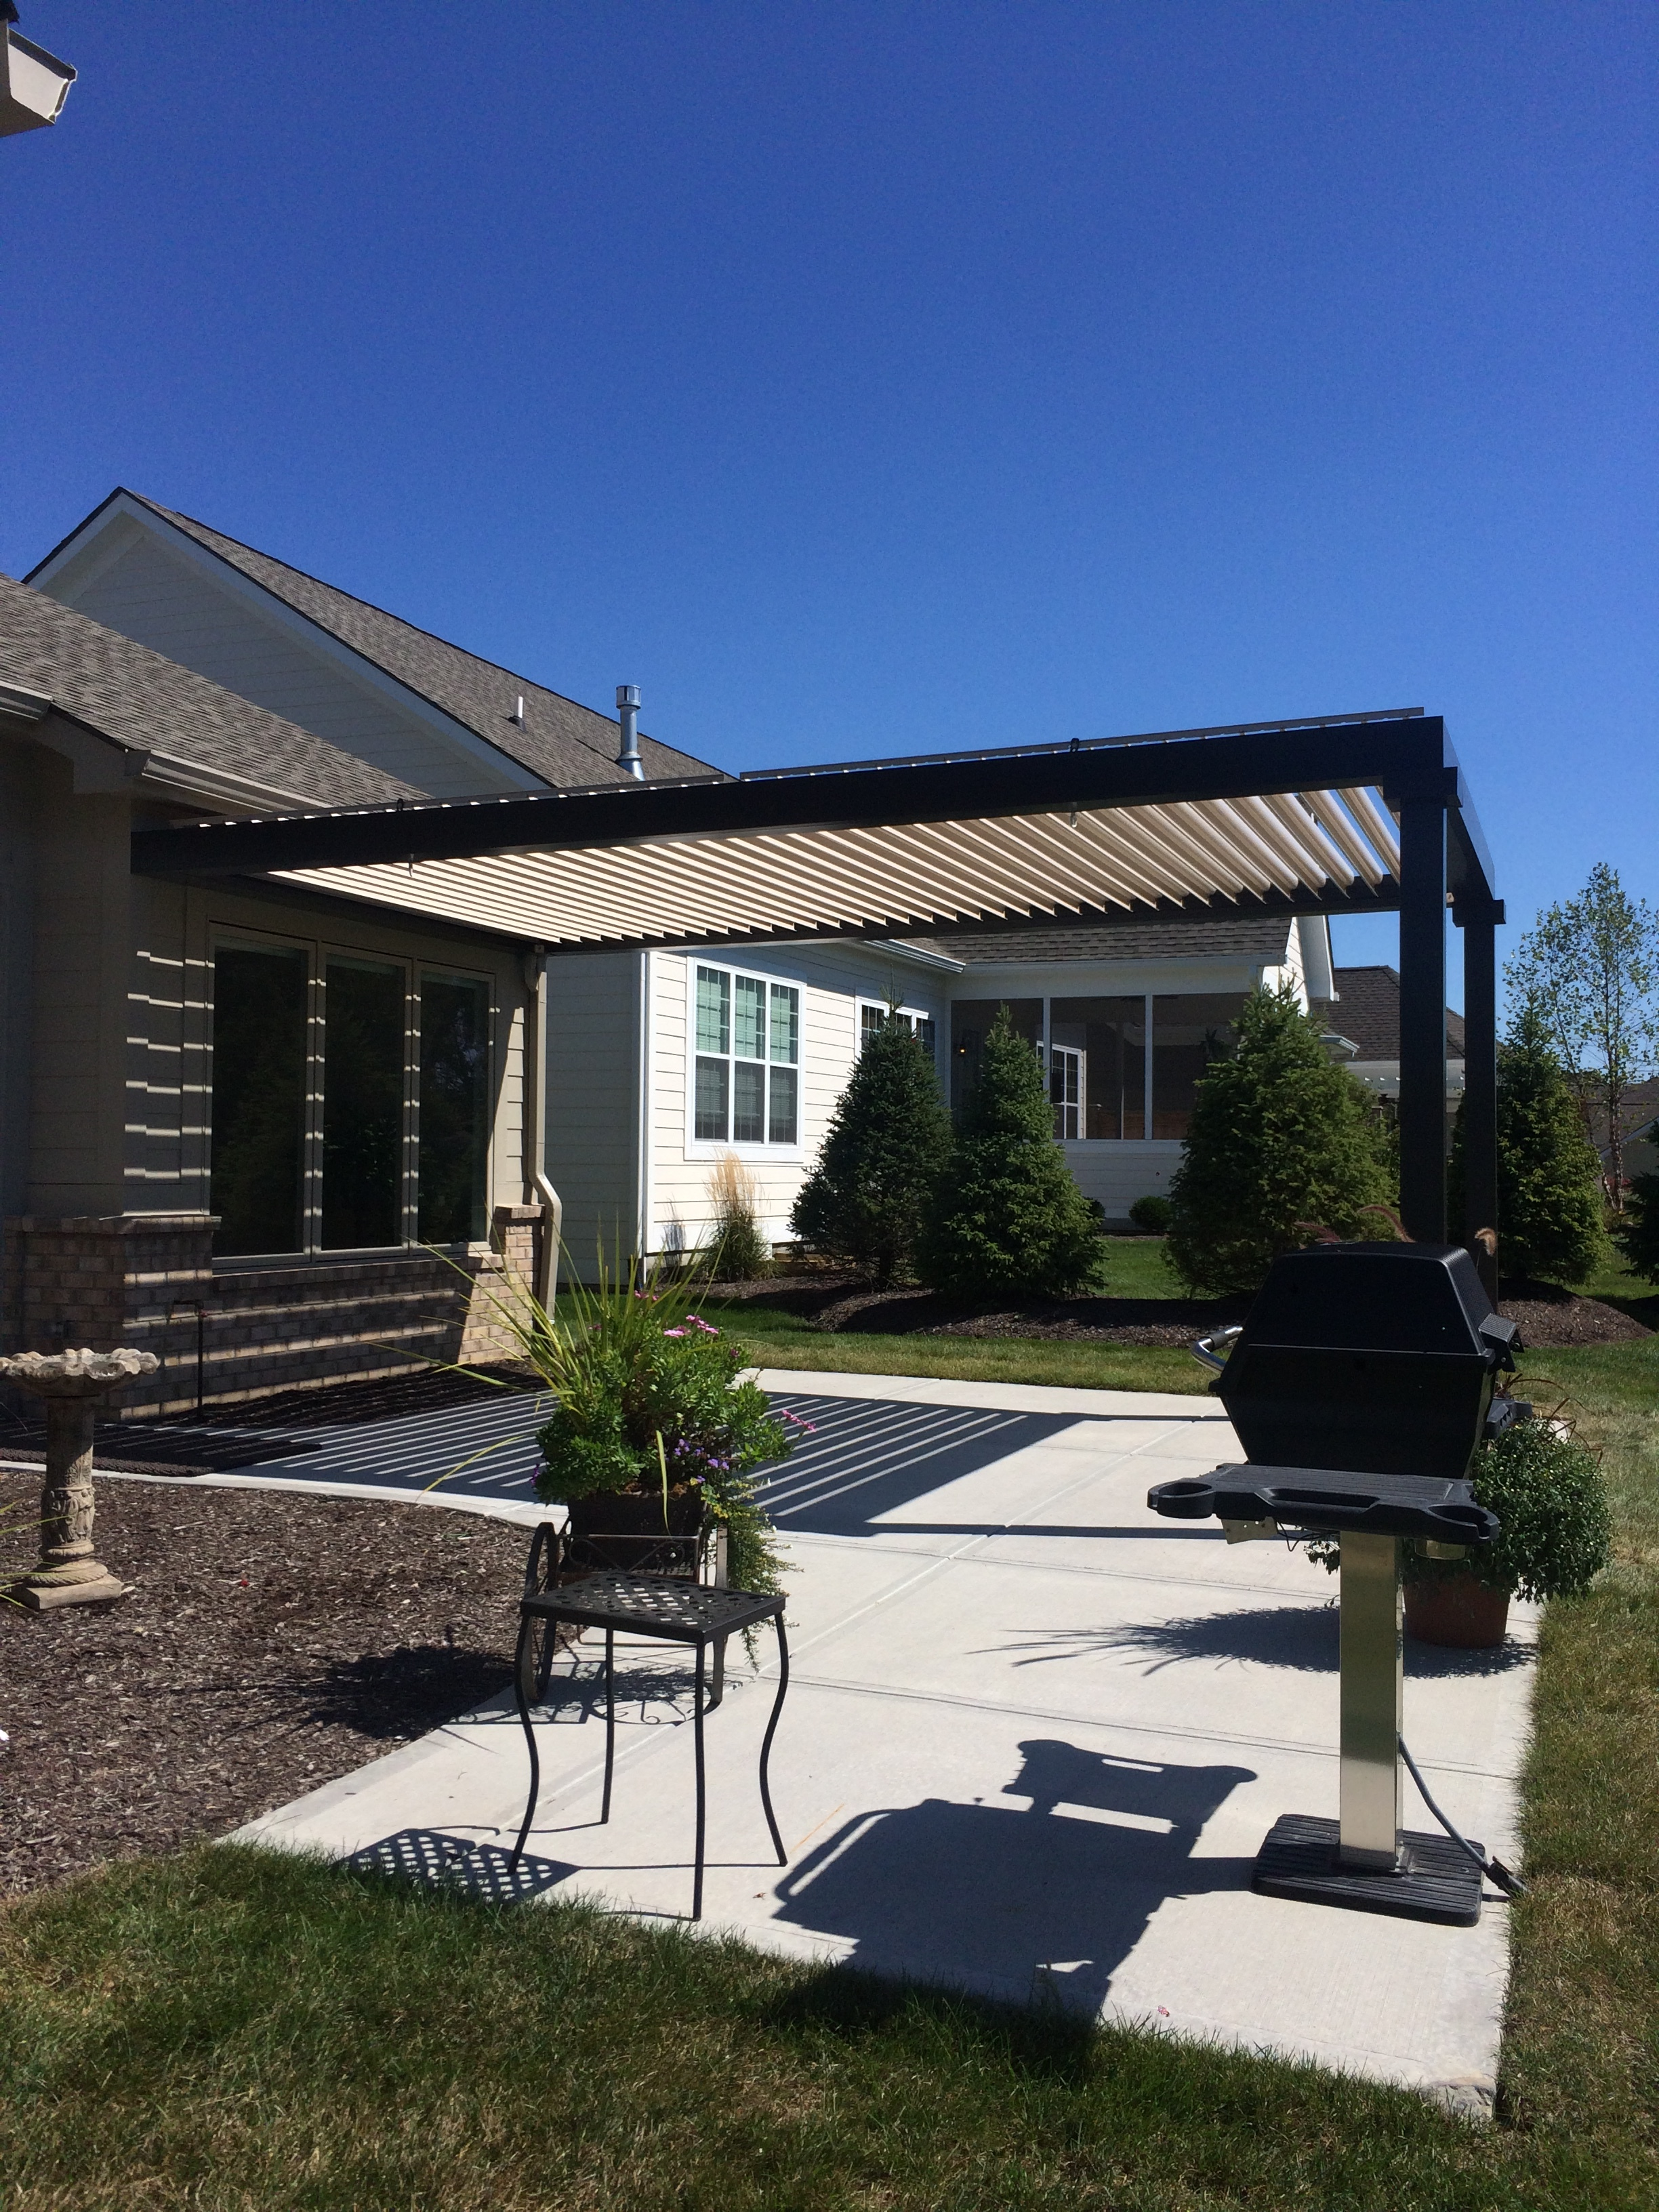 Zionsville, IN - Patio cover - Attached